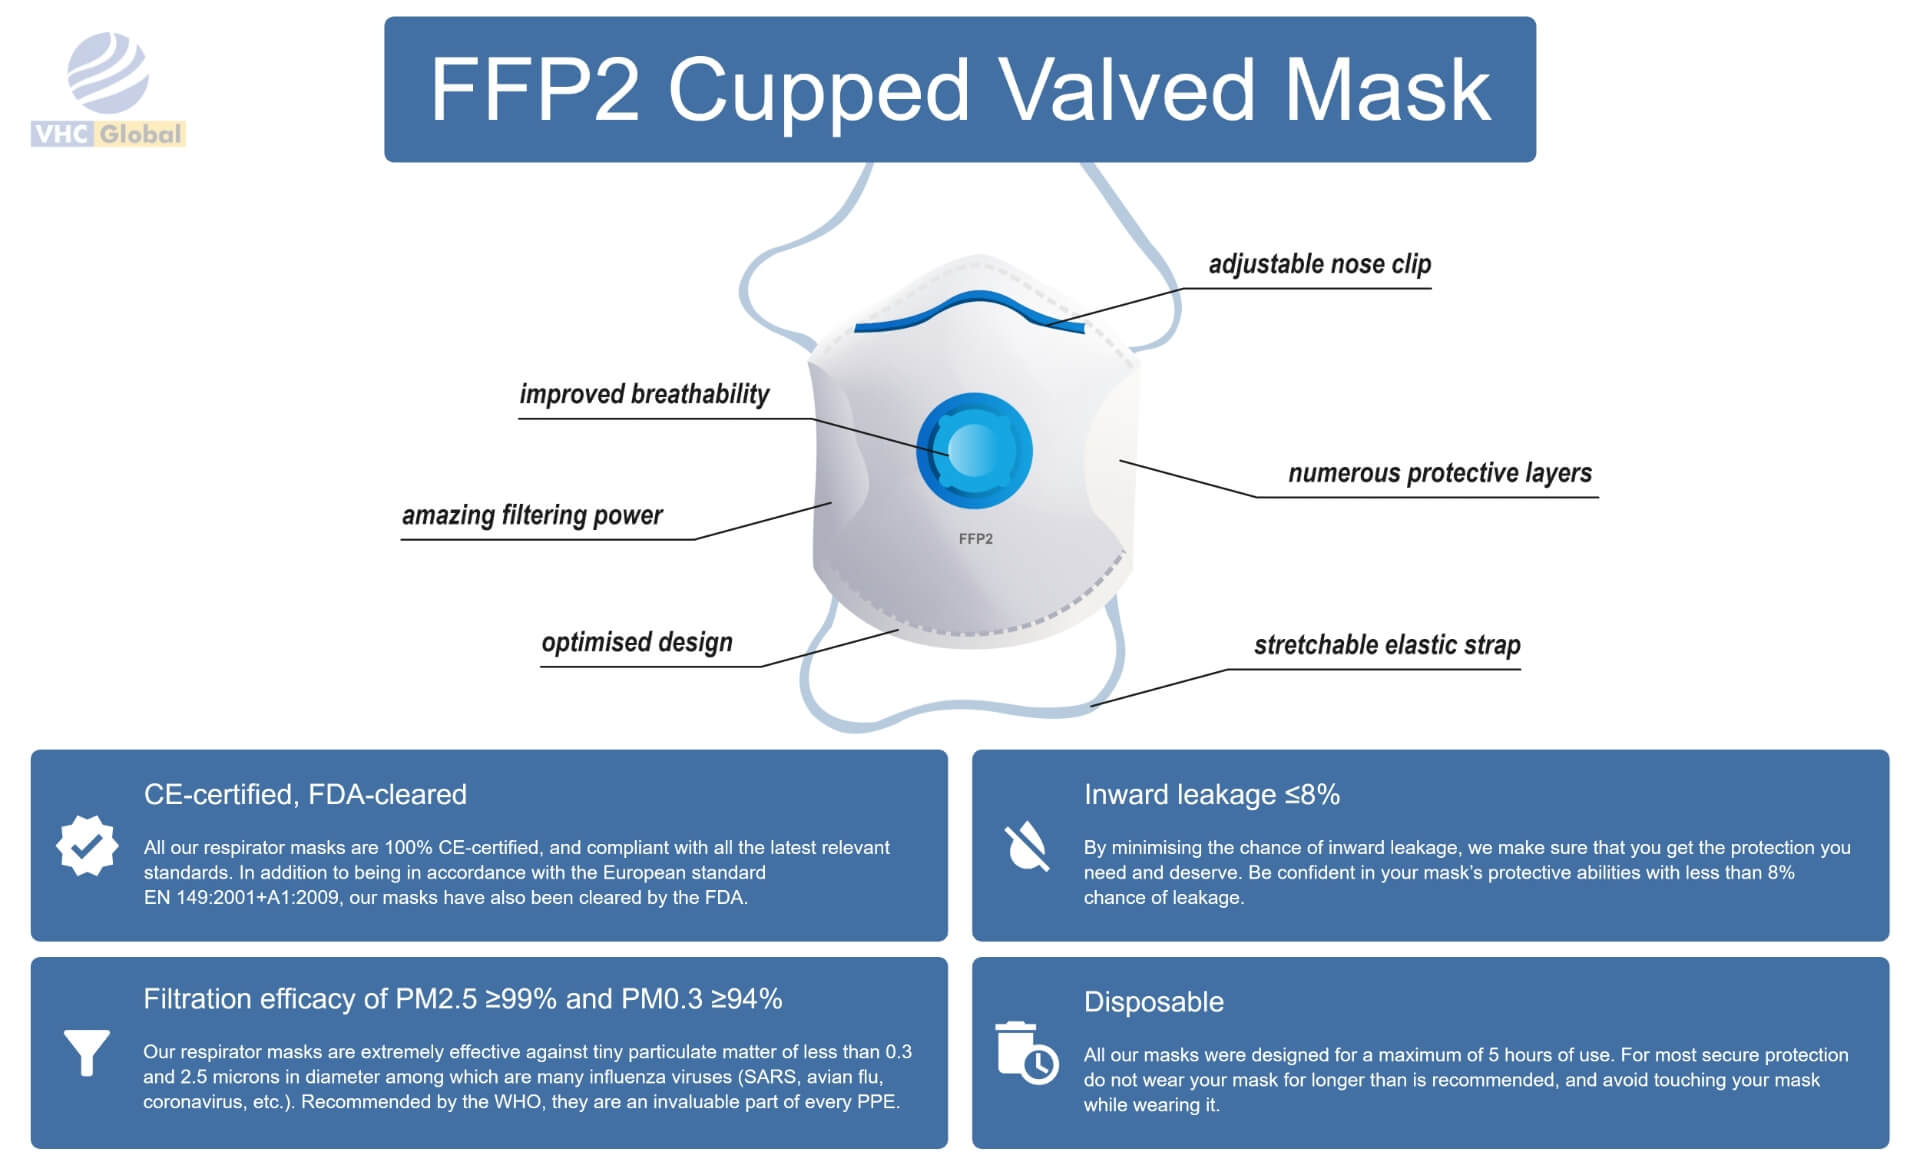 Infographic for the FFP2 face mask, FFP2 Mask Cupped Valved. All details. FFP2 Respirator Mask or FFP2 Mask Cupped valved . Adjustable nose clip, Stretchable elastic strip, numerous protective layers, optimized design, amazing filtering power, improved breathability. Inward leaking 99% and PM0.3>94%